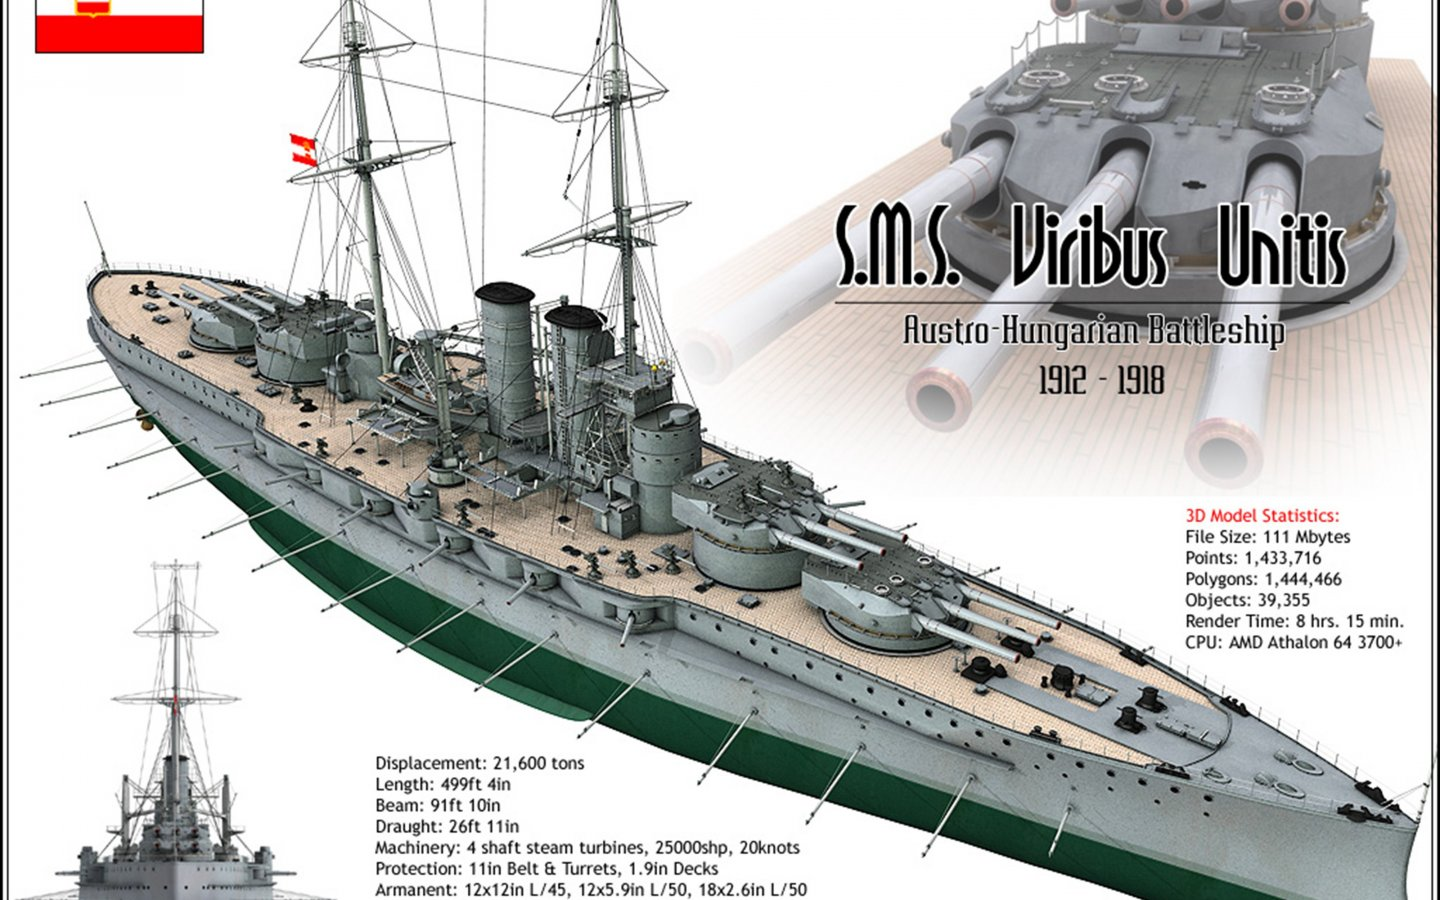 The Habsburg Navy Ships The Dreadnought Viribus Unitis Glitter Wallpaper Creepypasta Choose from Our Pictures  Collections Wallpapers [x-site.ml]